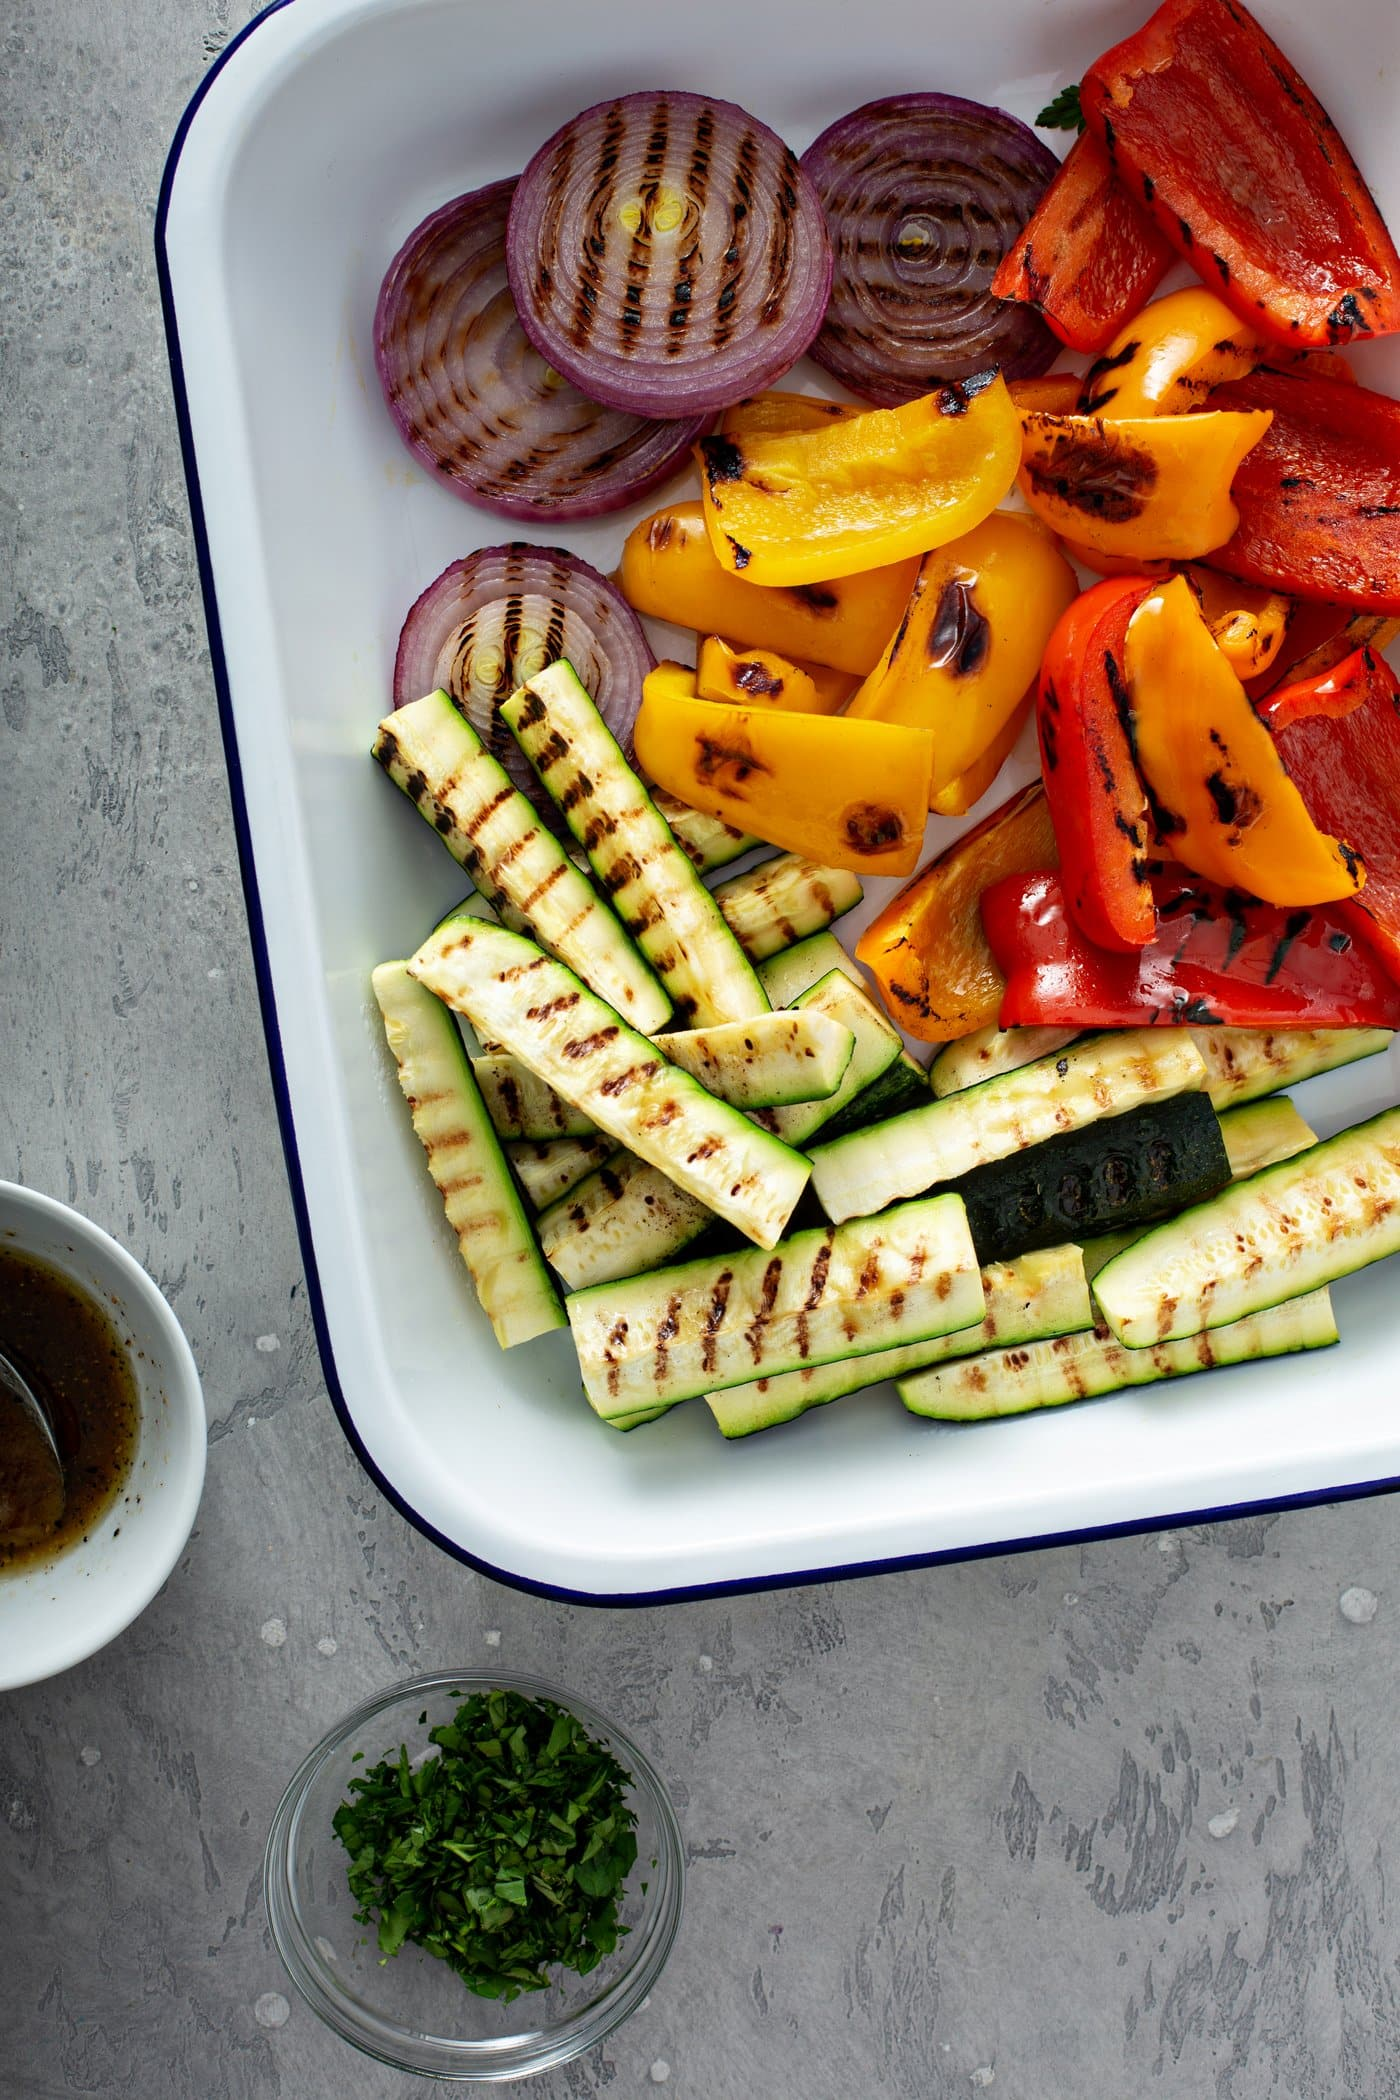 A plate of grilled veggies with a cup of balsamic glaze sitting next to the plate. The grilled zucchini wedges, slices of red onion and red and yellow bell peppers have lovely grill marks on them.